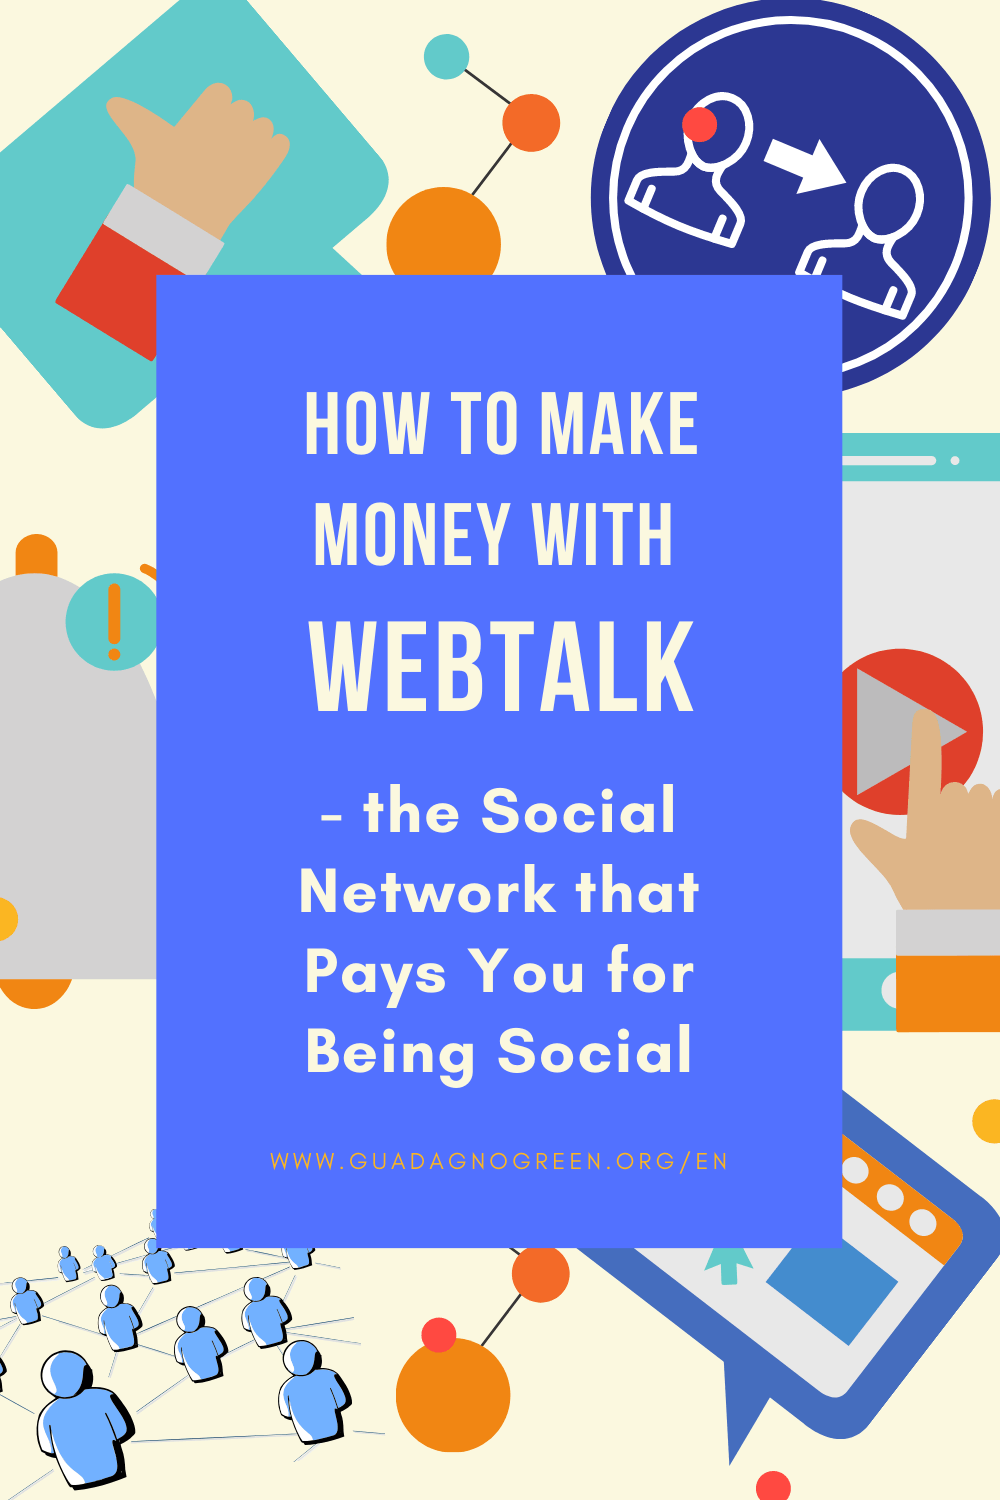 how-to-make-money-with-webtalk-the-social-network-that-pays-for-being-social